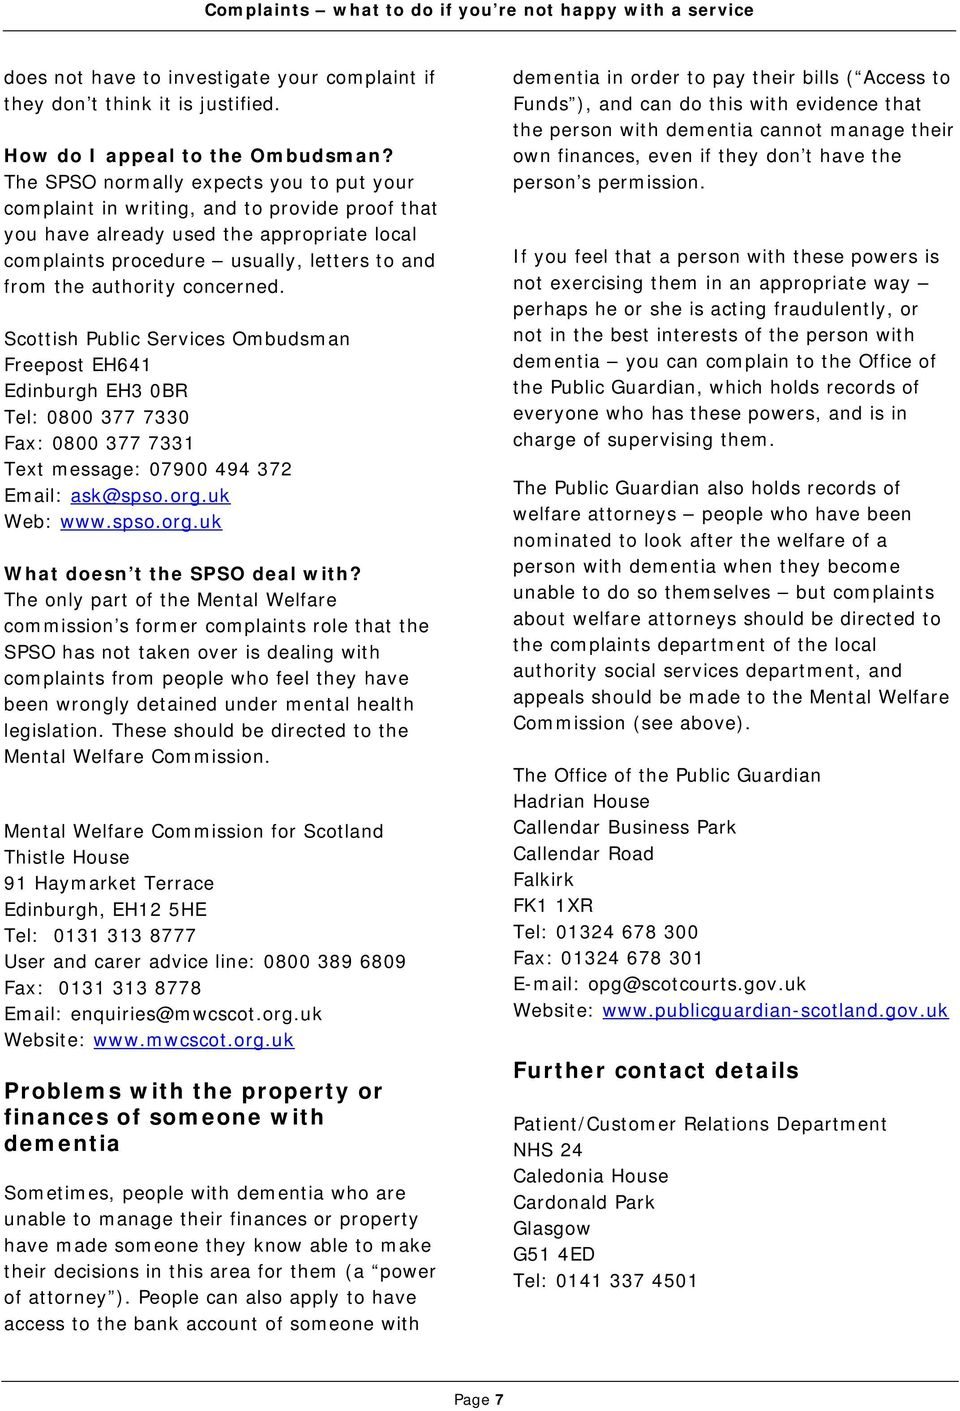 concerned. Scottish Public Services Ombudsman Freepost EH641 Edinburgh EH3 0BR Tel: 0800 377 7330 Fax: 0800 377 7331 Text message: 07900 494 372 Email: ask@spso.org.uk Web: www.spso.org.uk What doesn t the SPSO deal with?